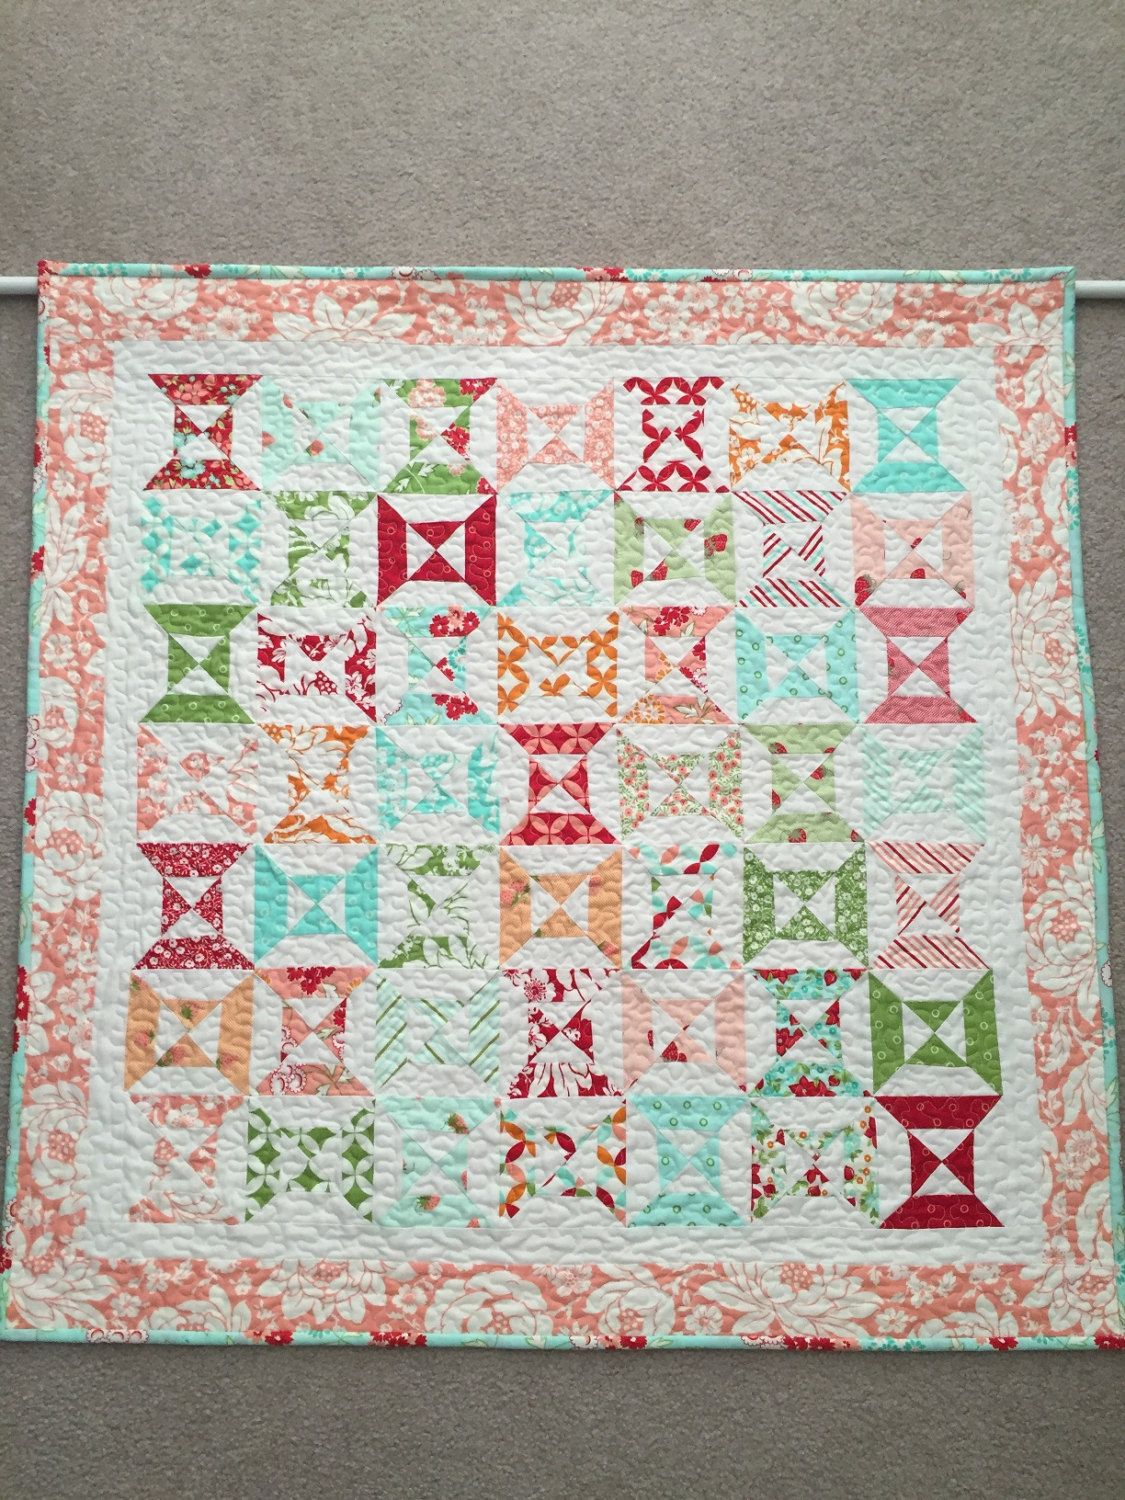 Modified Hourglass Block Quilt Wall Hanging or Table Topper by backporchquilts on Etsy